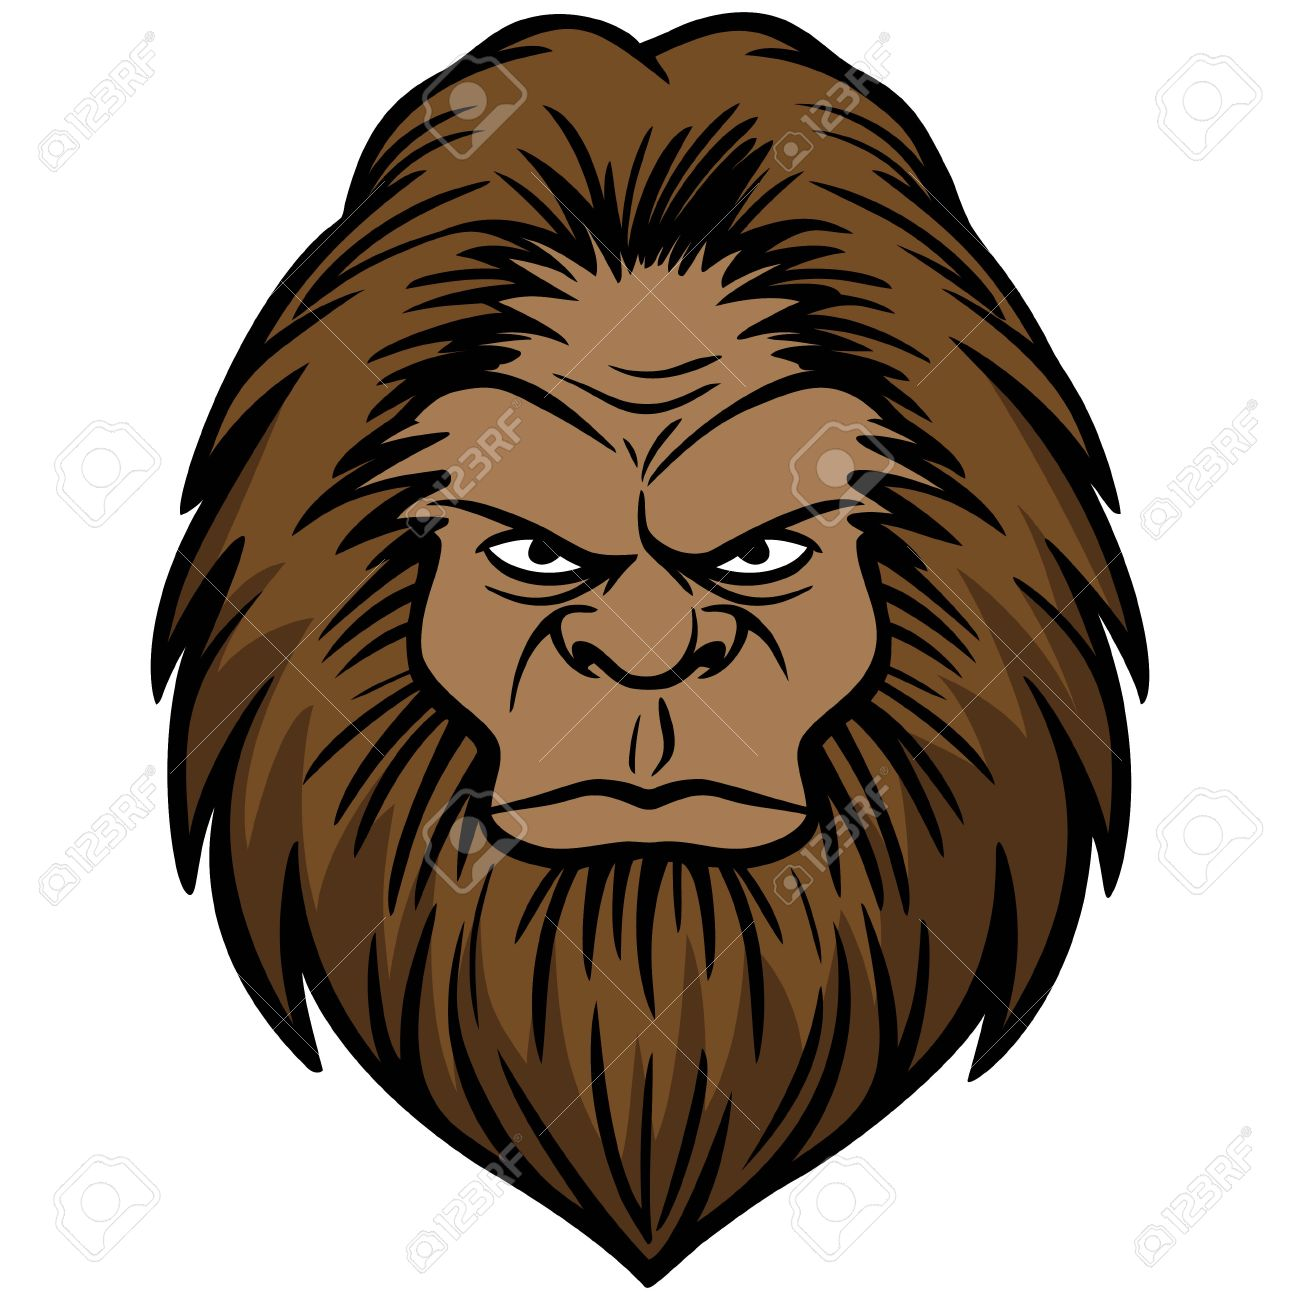 bigfoot head royalty free cliparts vectors and stock illustration rh 123rf com